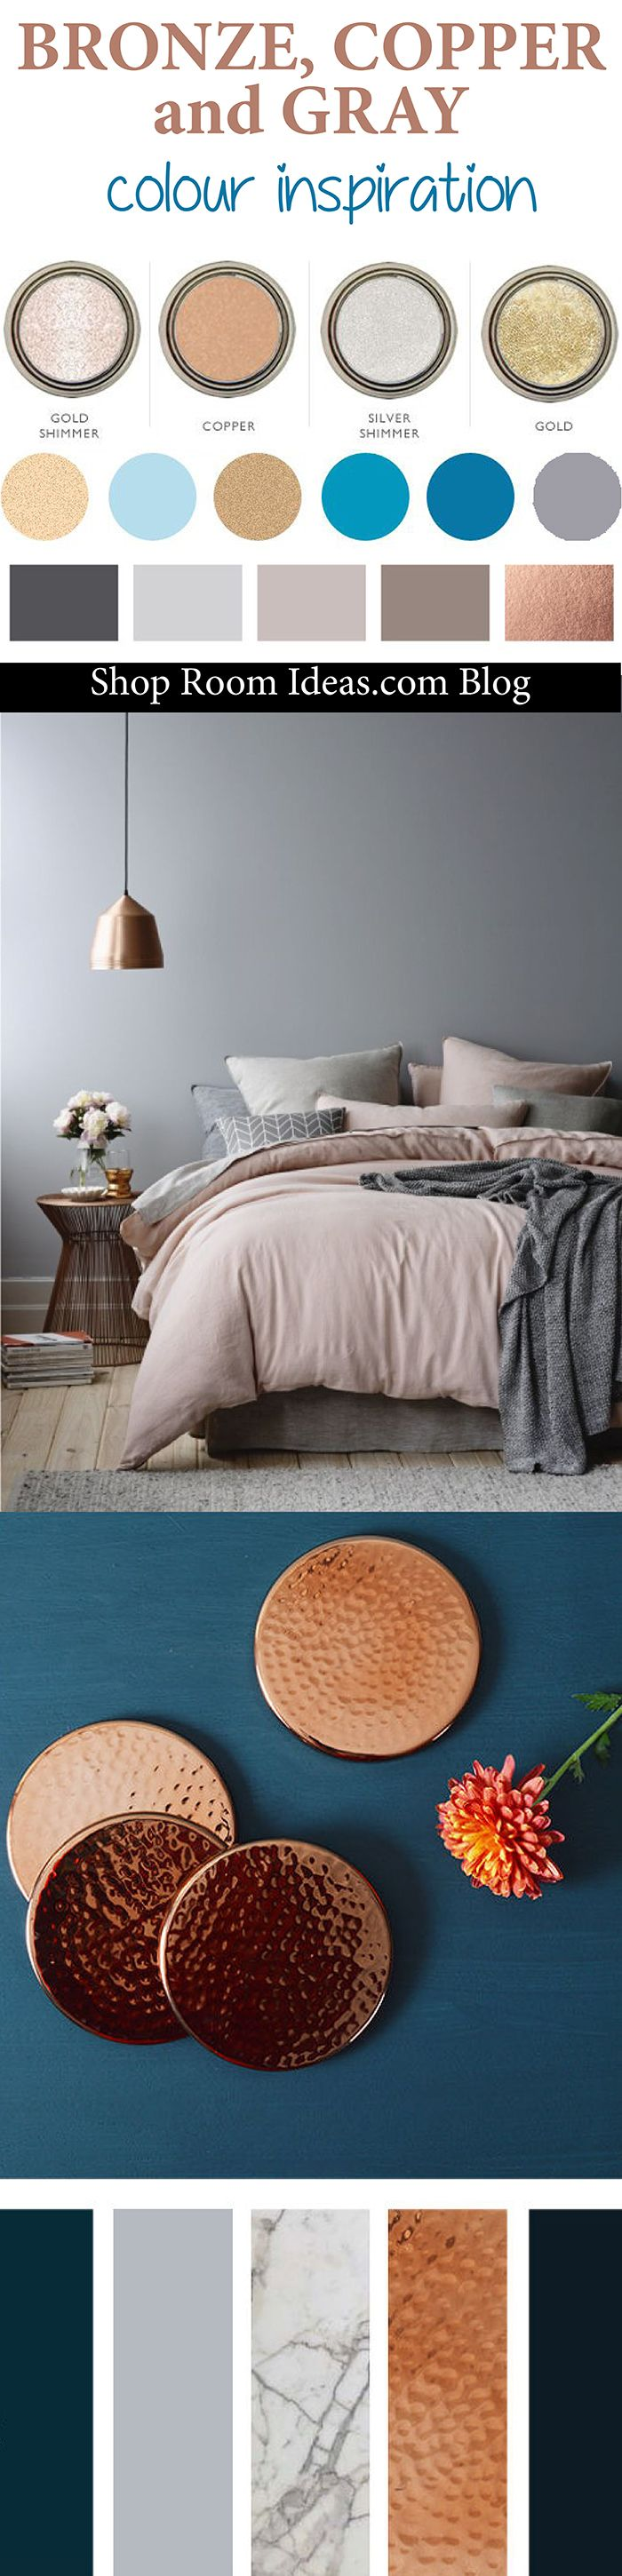 Bronze, Copper, Gray and Navy Blue Colour Palette - Inspiration for ...